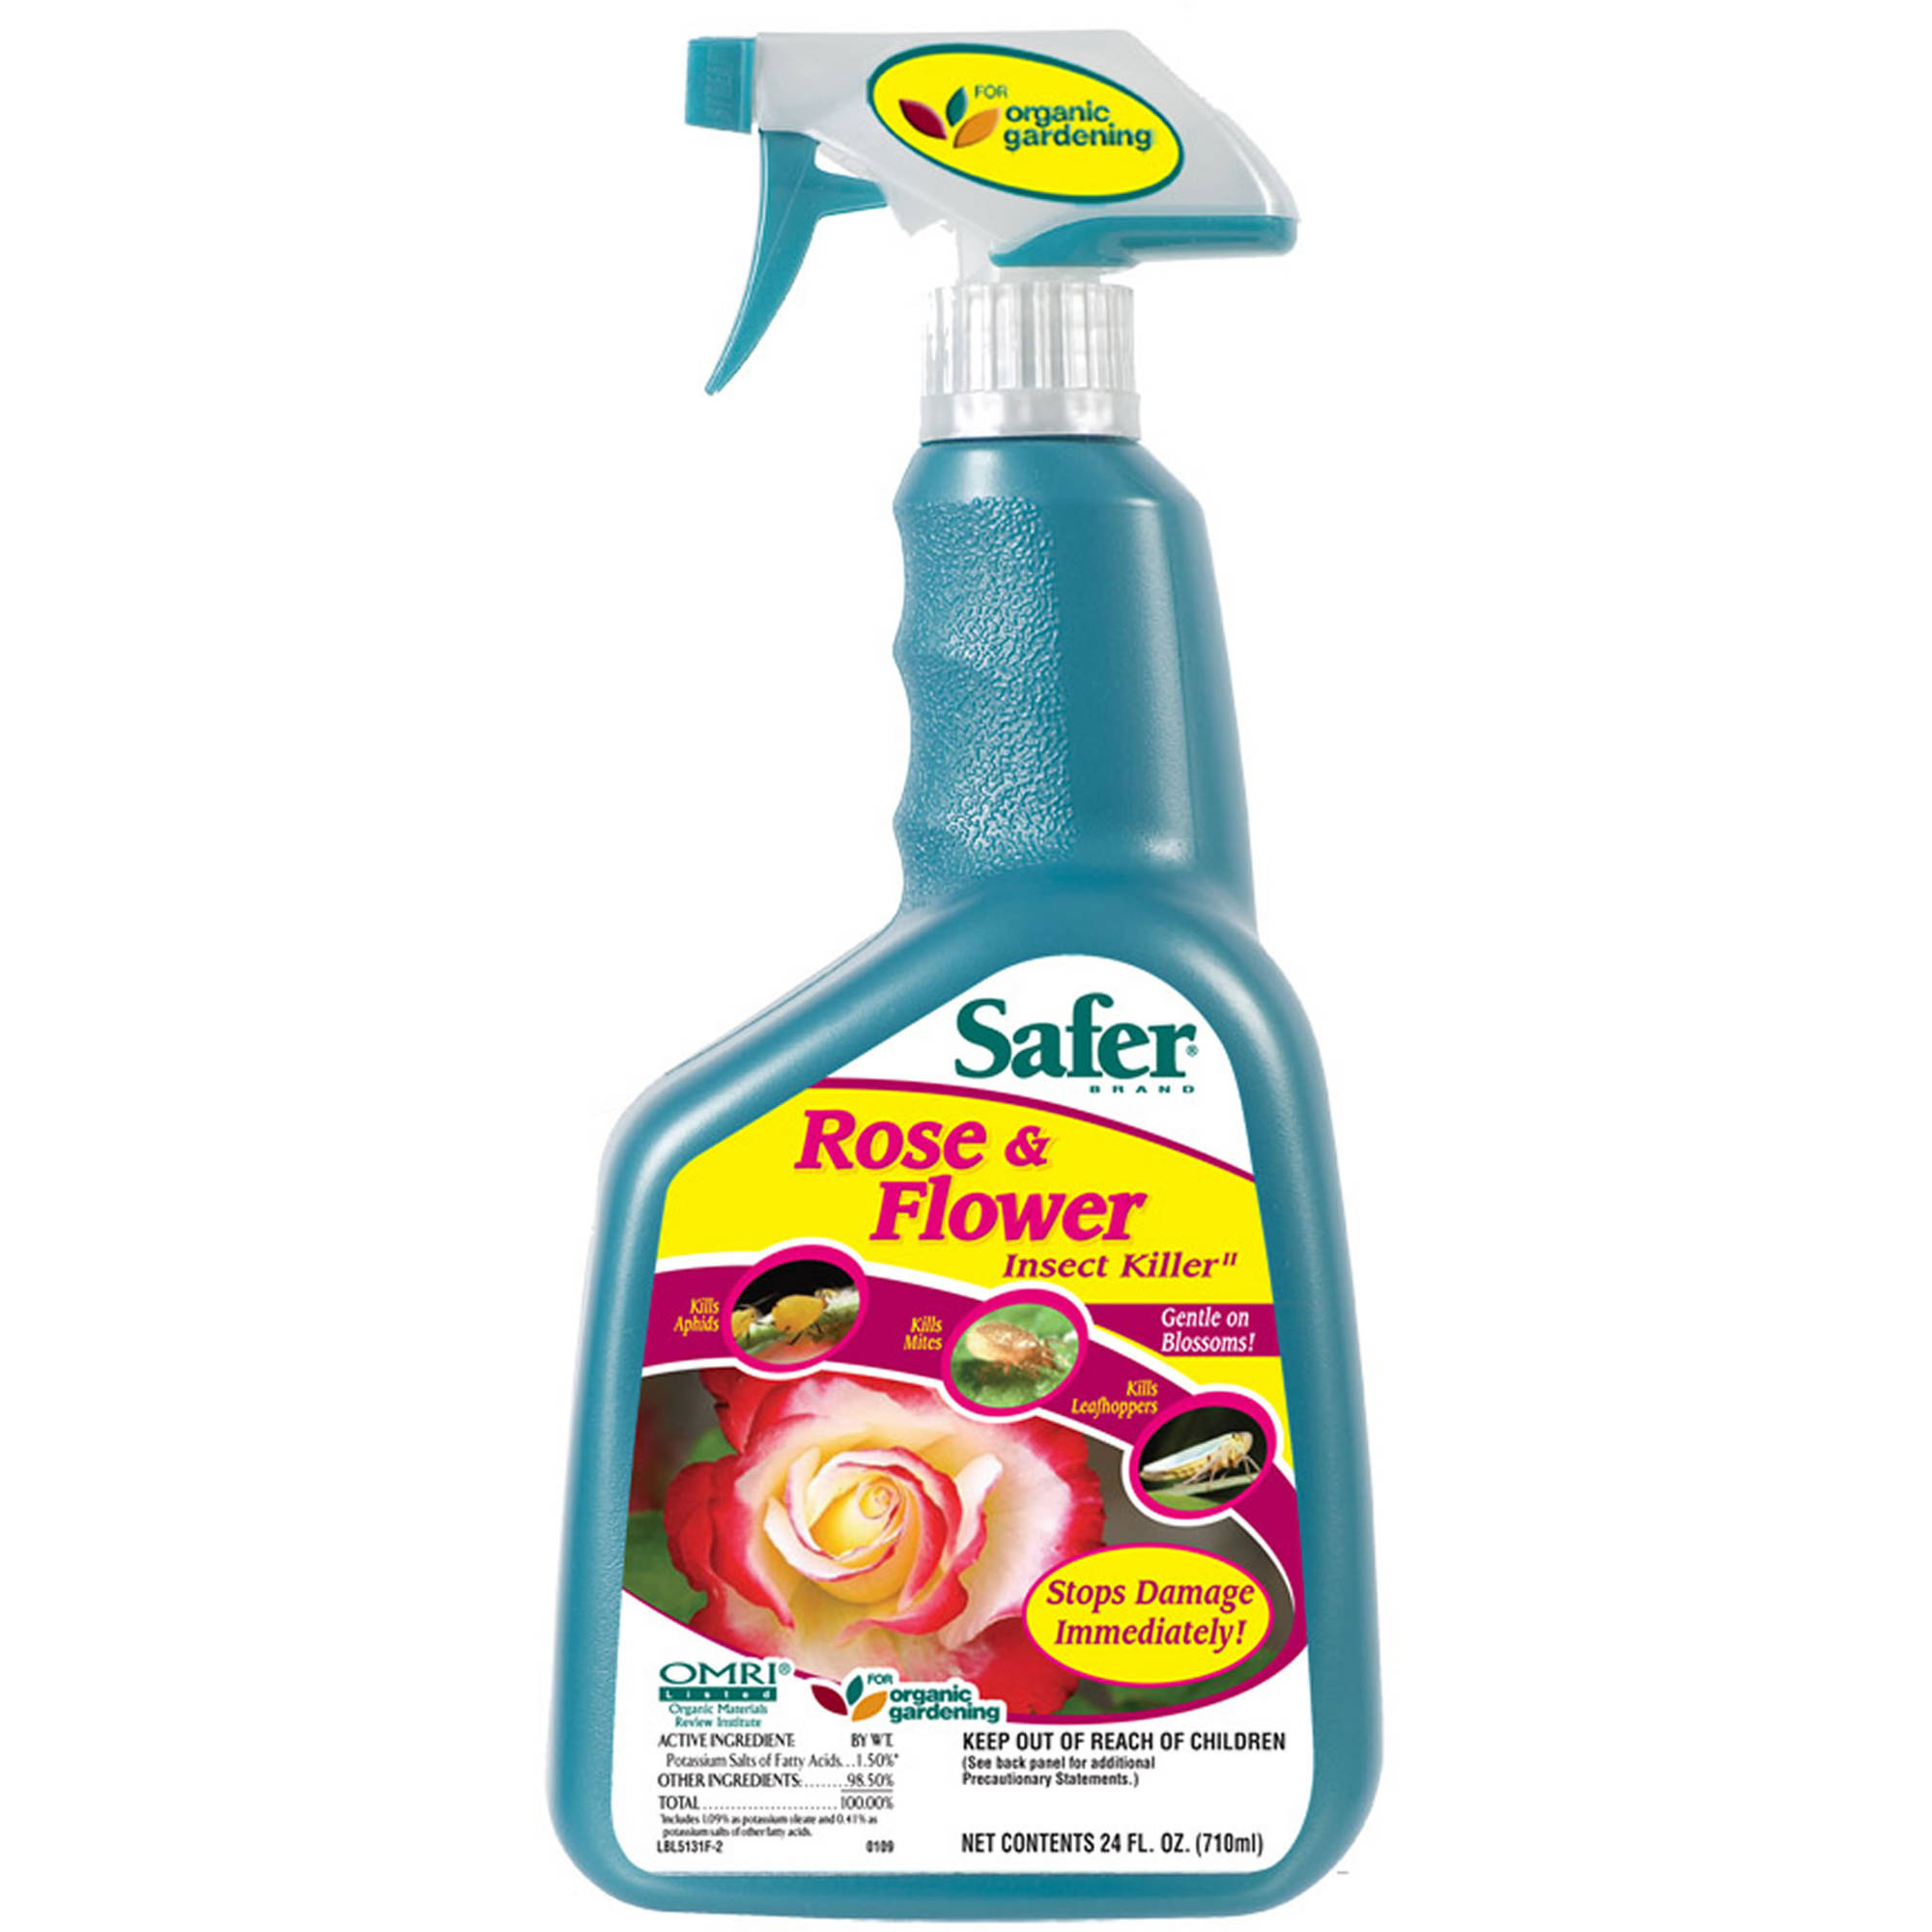 Safer Brand 32 fl oz Ready-To-Use Rose and Flower Insect Killer